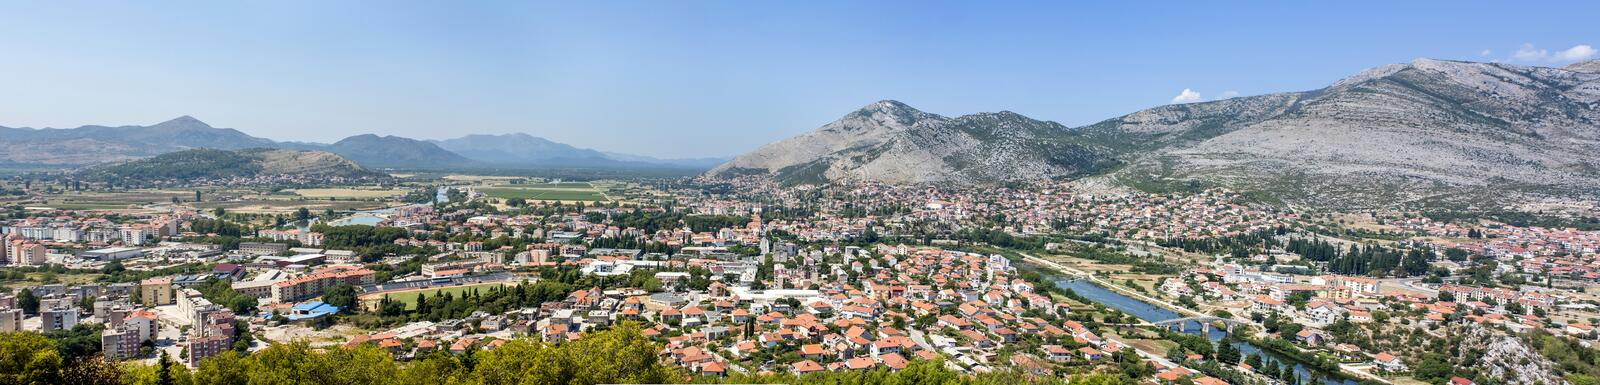 Trebinje, Bosnia. Panoramic composition at high res royalty free stock photos